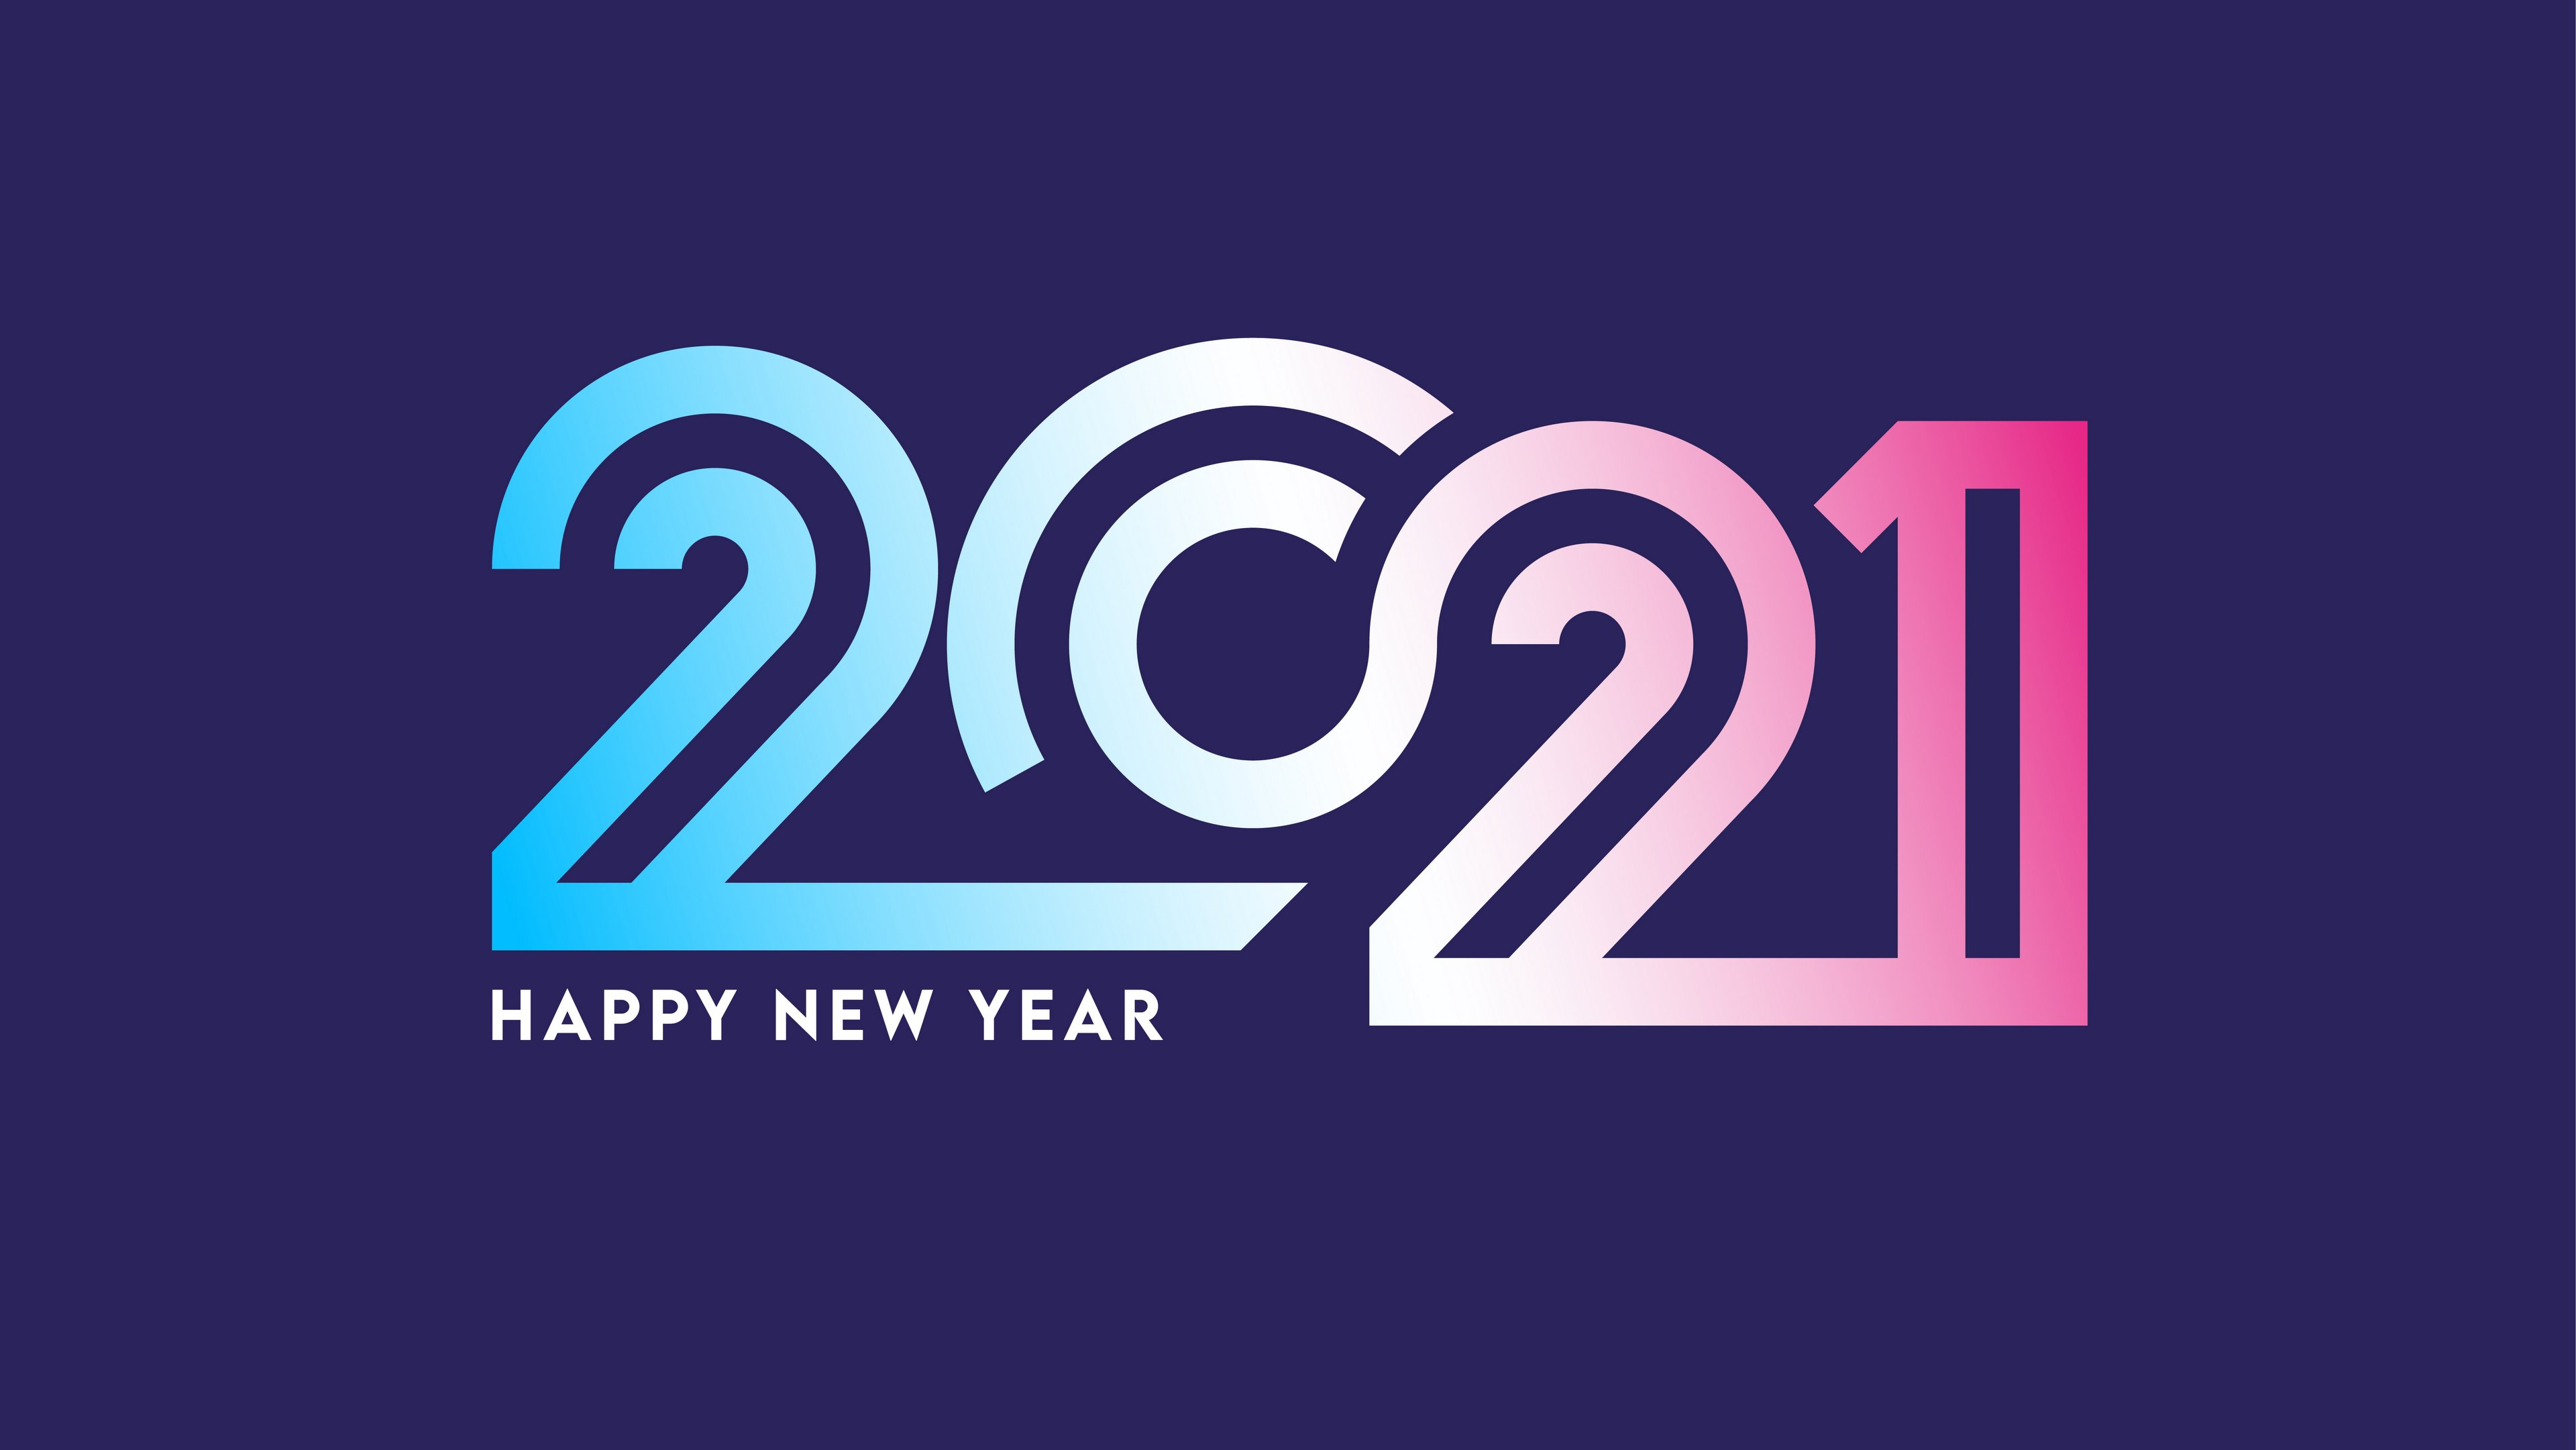 Happy New Year 2021 HD 4K Pic